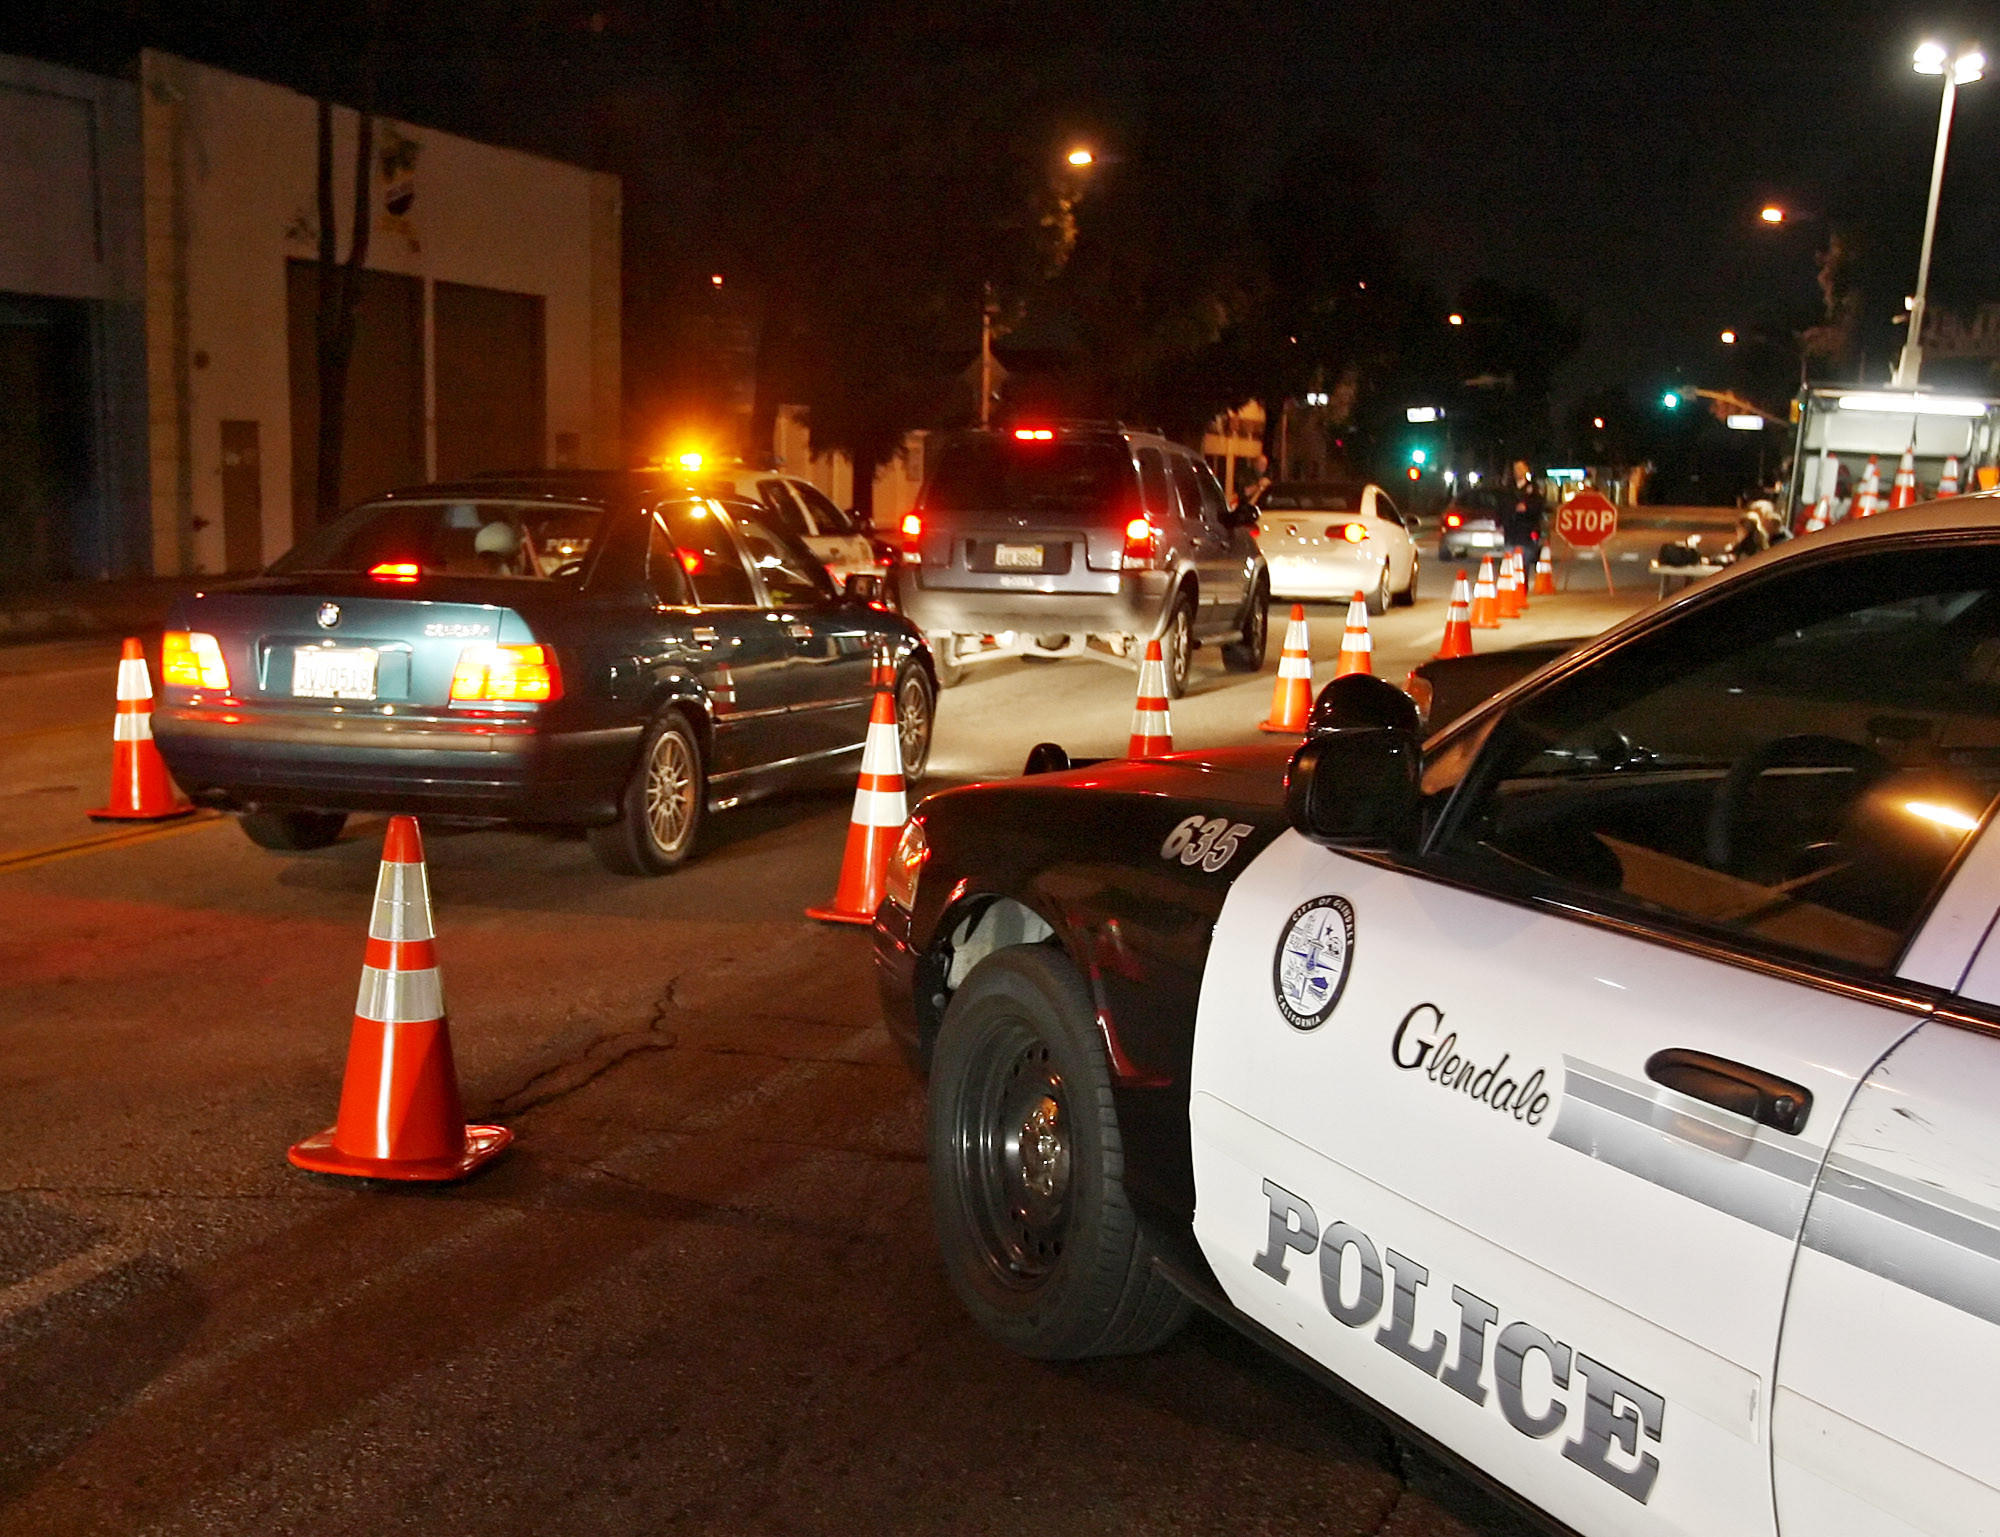 File Photo: Glendale Police set up a DUI checkpoint on San Fernando Road at Palmer Avenue in Glendale, photographed in 2010. A DUI checkpoint is scheduled to happen on Friday, Jan. 24, 2014.